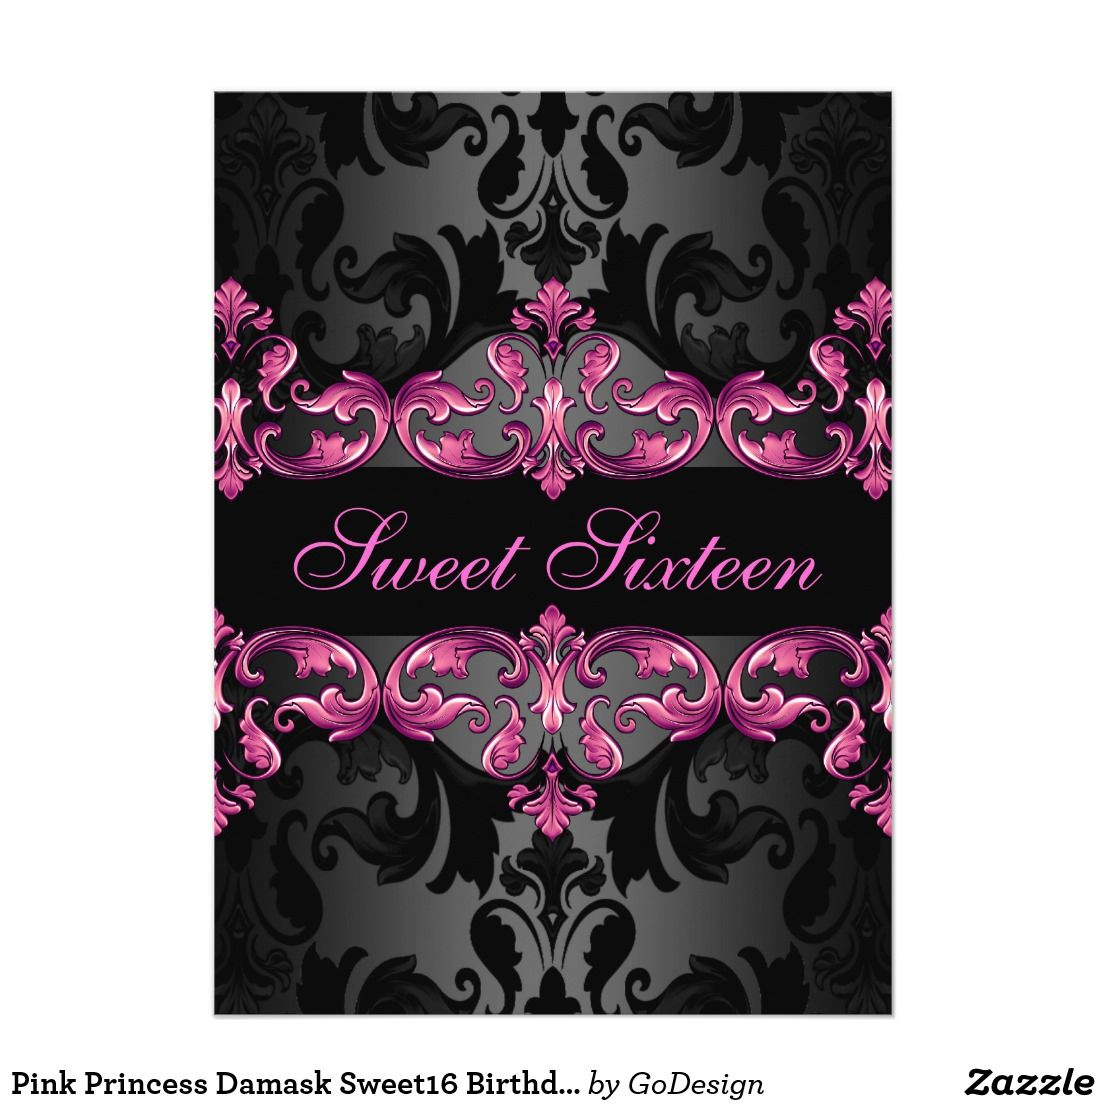 Pink Princess Damask Sweet 16 Birthday Invite This Elegant Customizable Sixteen Invitation Features Pattern On A Black